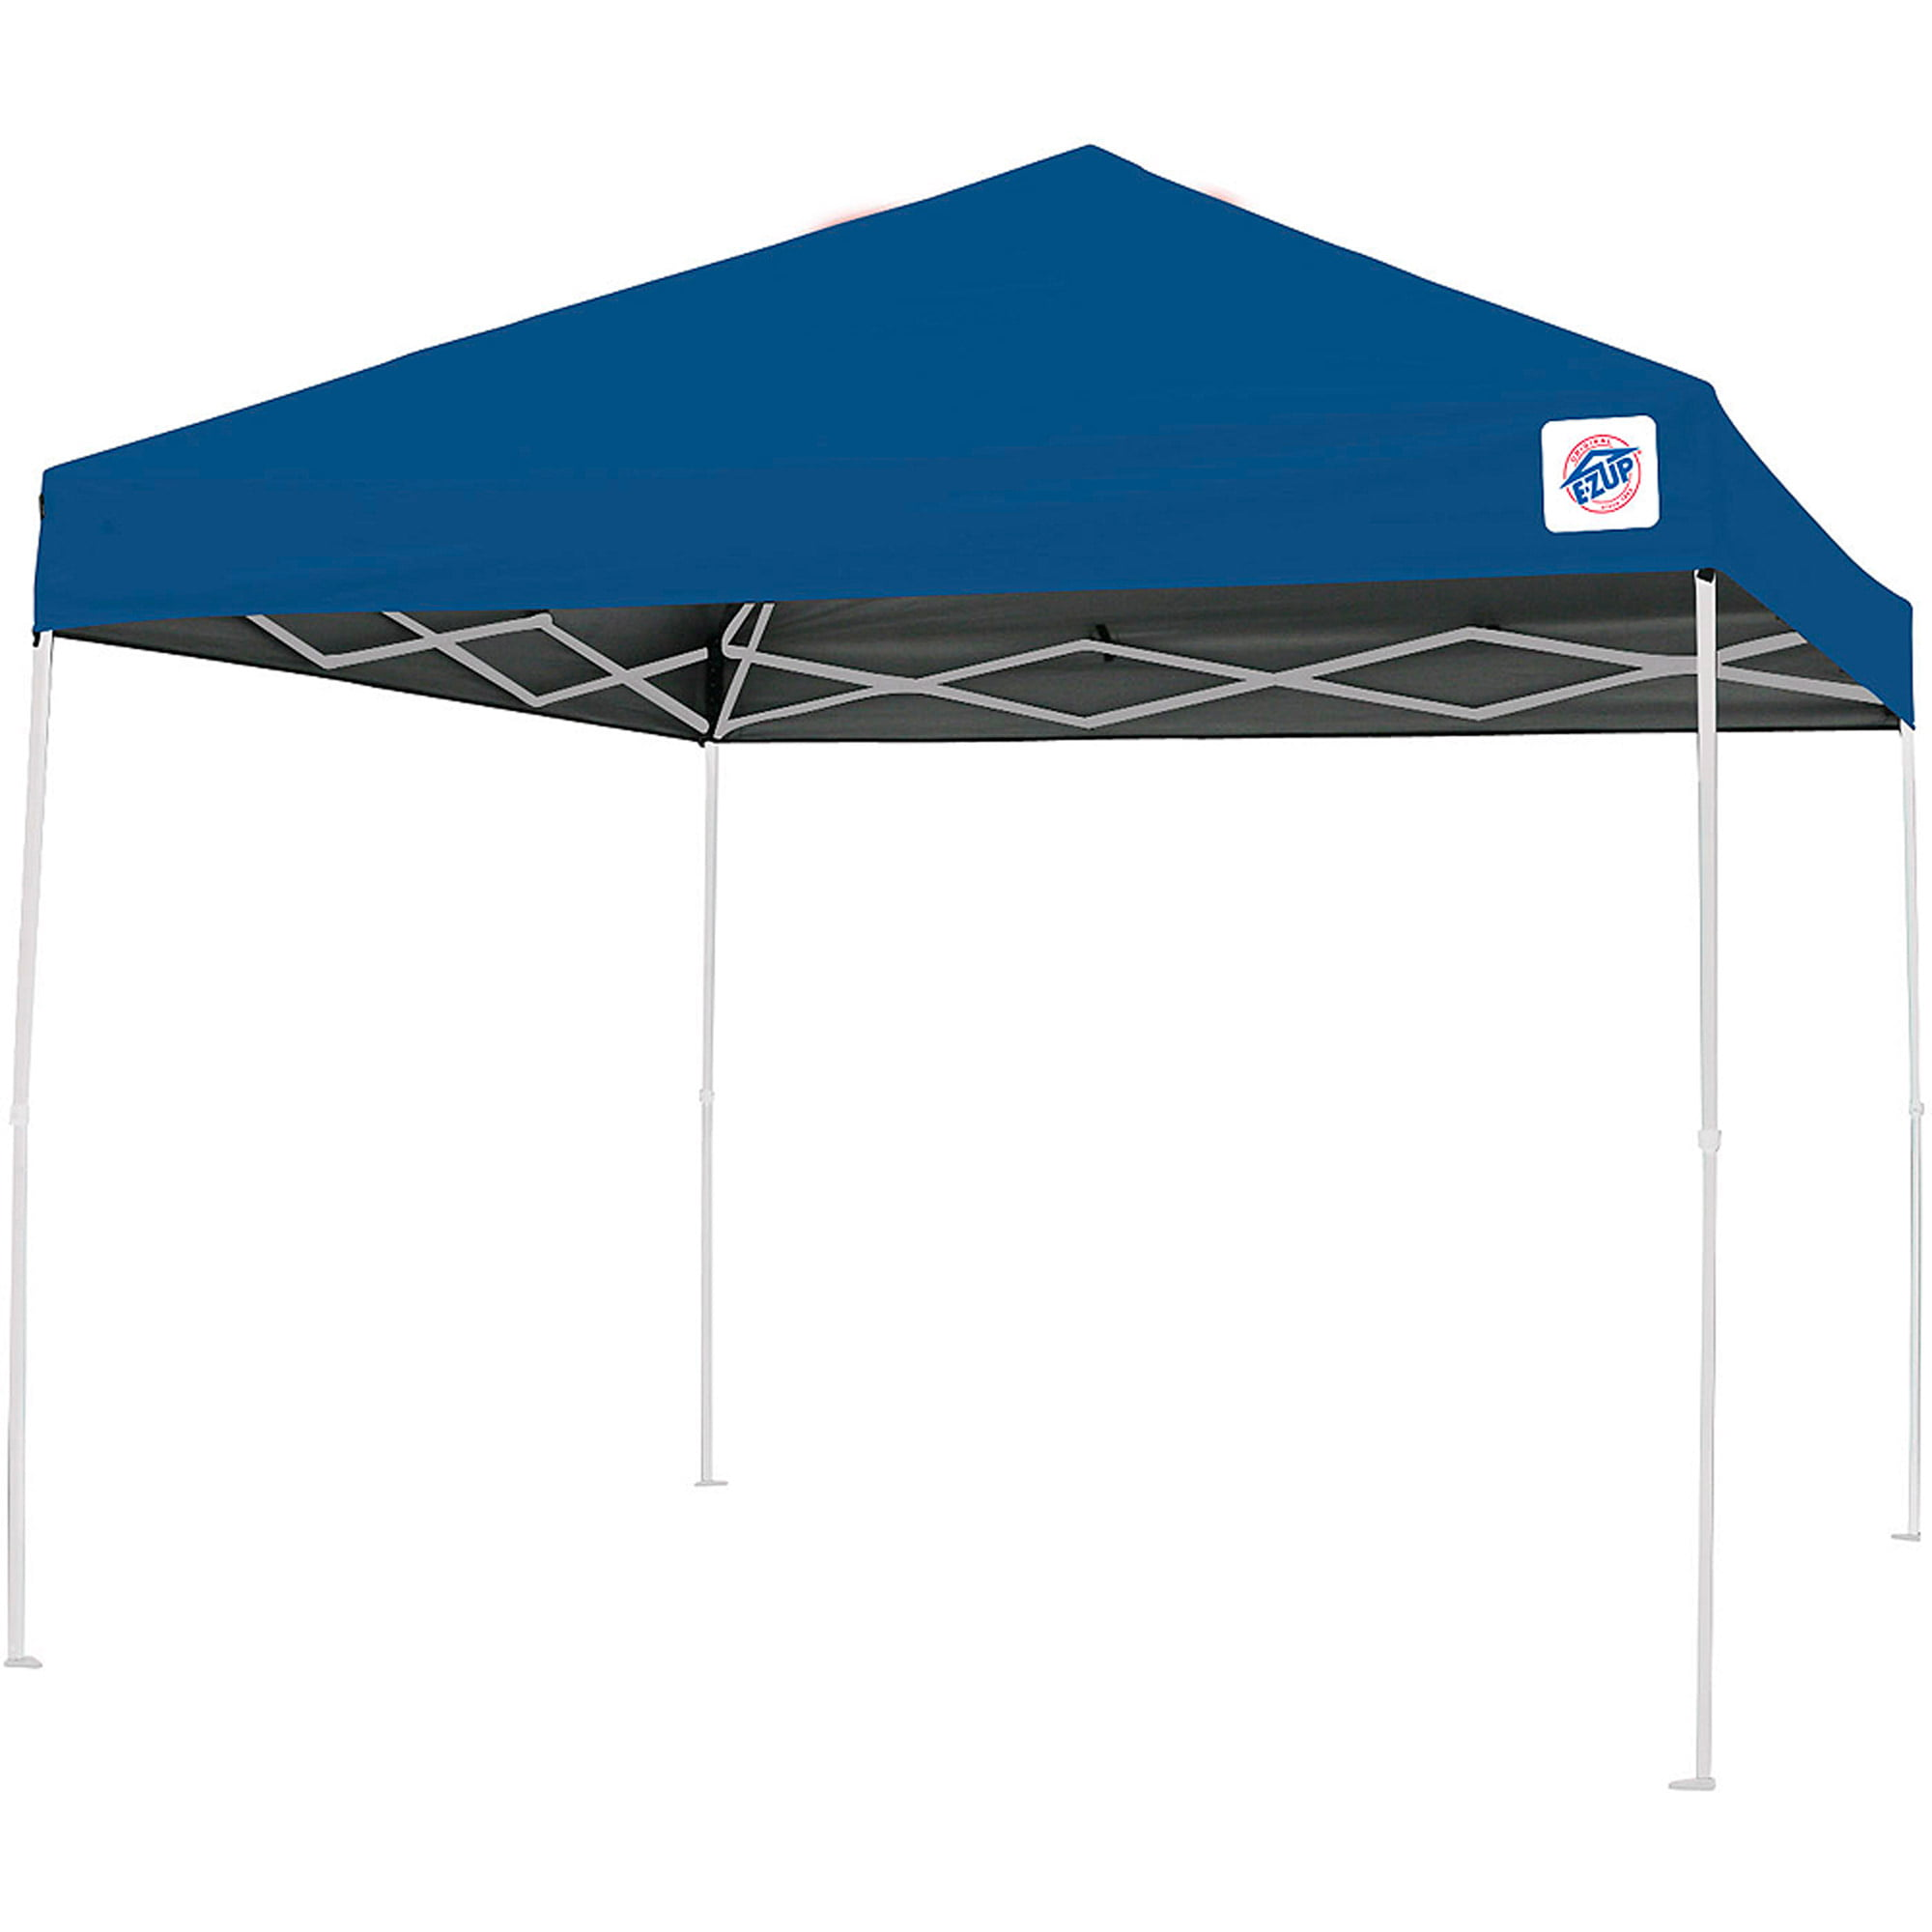 E-Z Up Envoy 10u0027x10u0027 Straight Leg Instant Canopy (100 sq. ft. coverage) - Walmart.com  sc 1 st  Walmart.com & E-Z Up Envoy 10u0027x10u0027 Straight Leg Instant Canopy (100 sq. ft ...